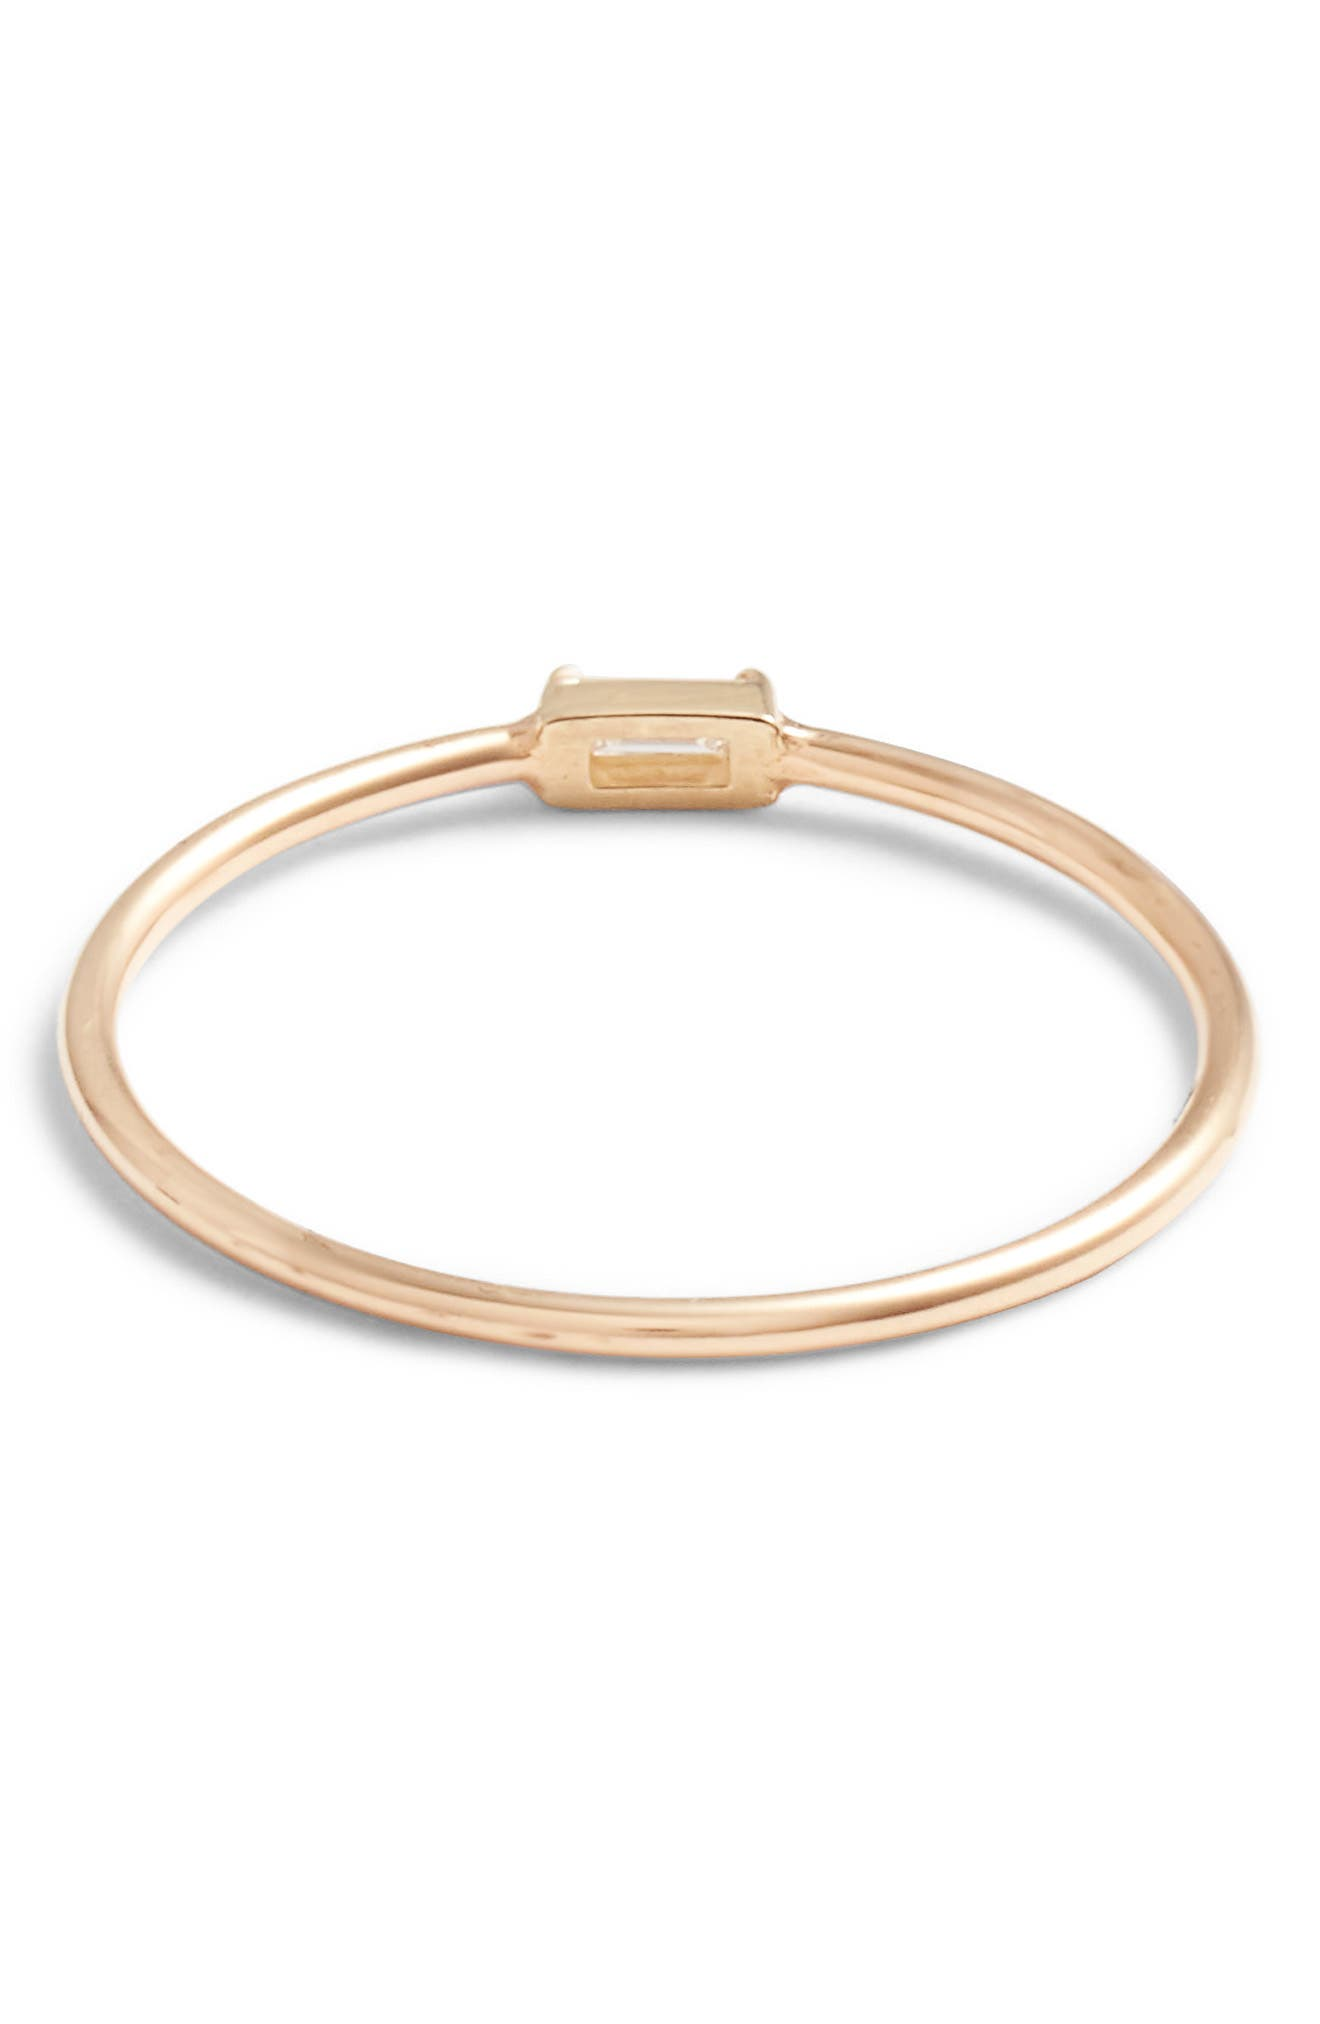 Baguette Diamond Stacking Ring,                             Alternate thumbnail 3, color,                             YELLOW GOLD